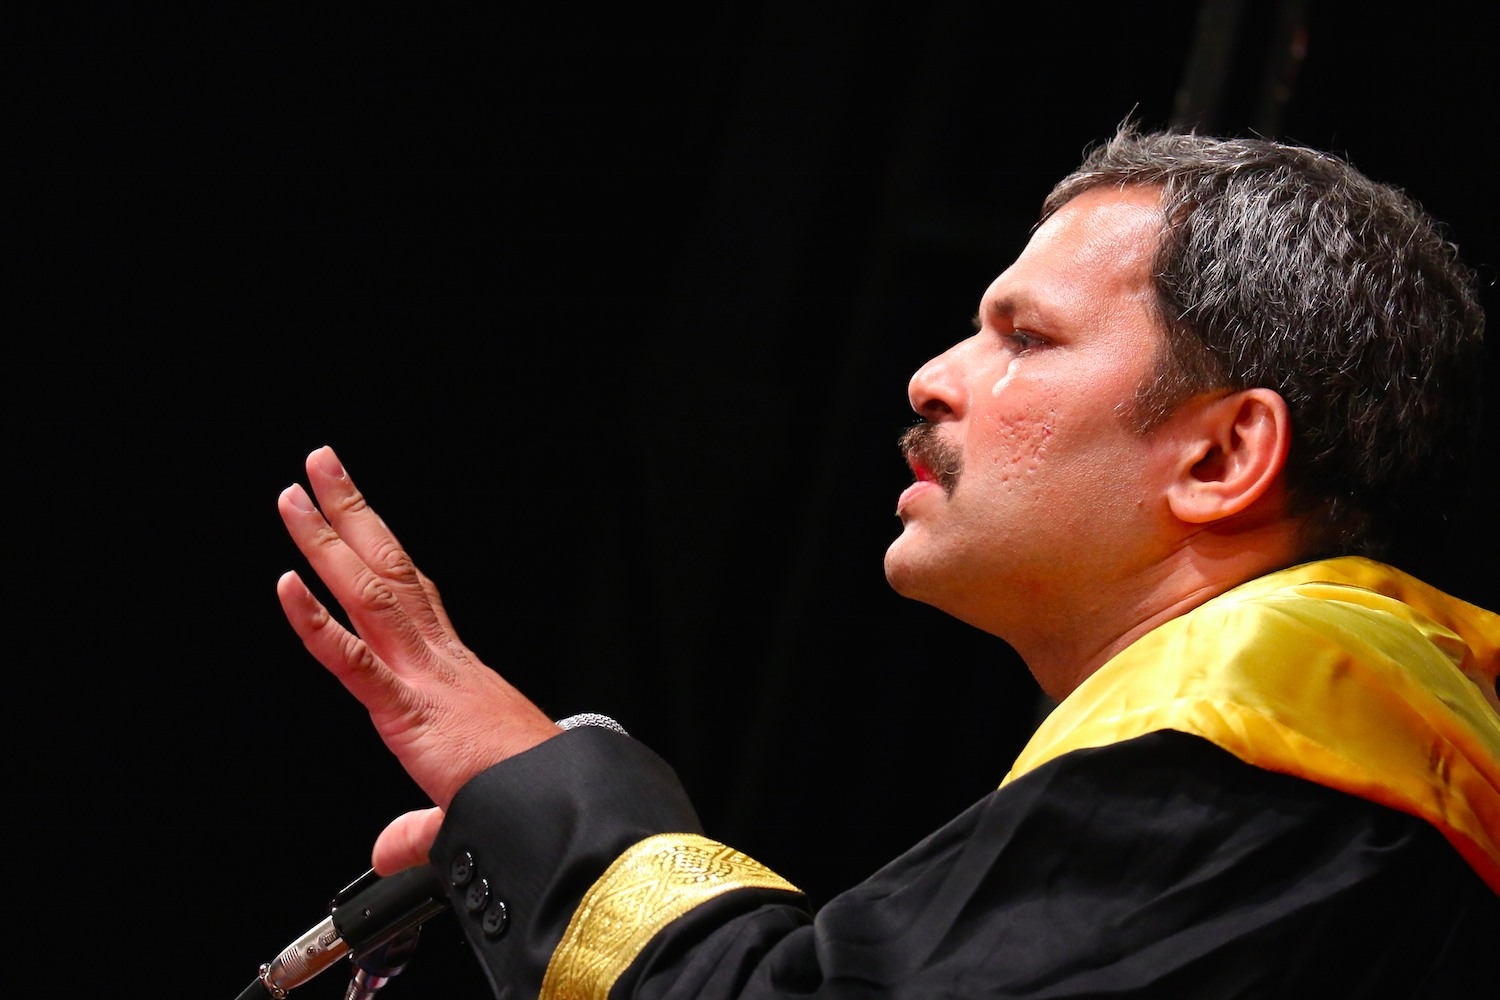 Harmony Consultants | Yogesh Patgaonkar | Guest of honour for NMIMS convocation function- an honour bestowed by Alma Matter on the Alumnus - Making a point